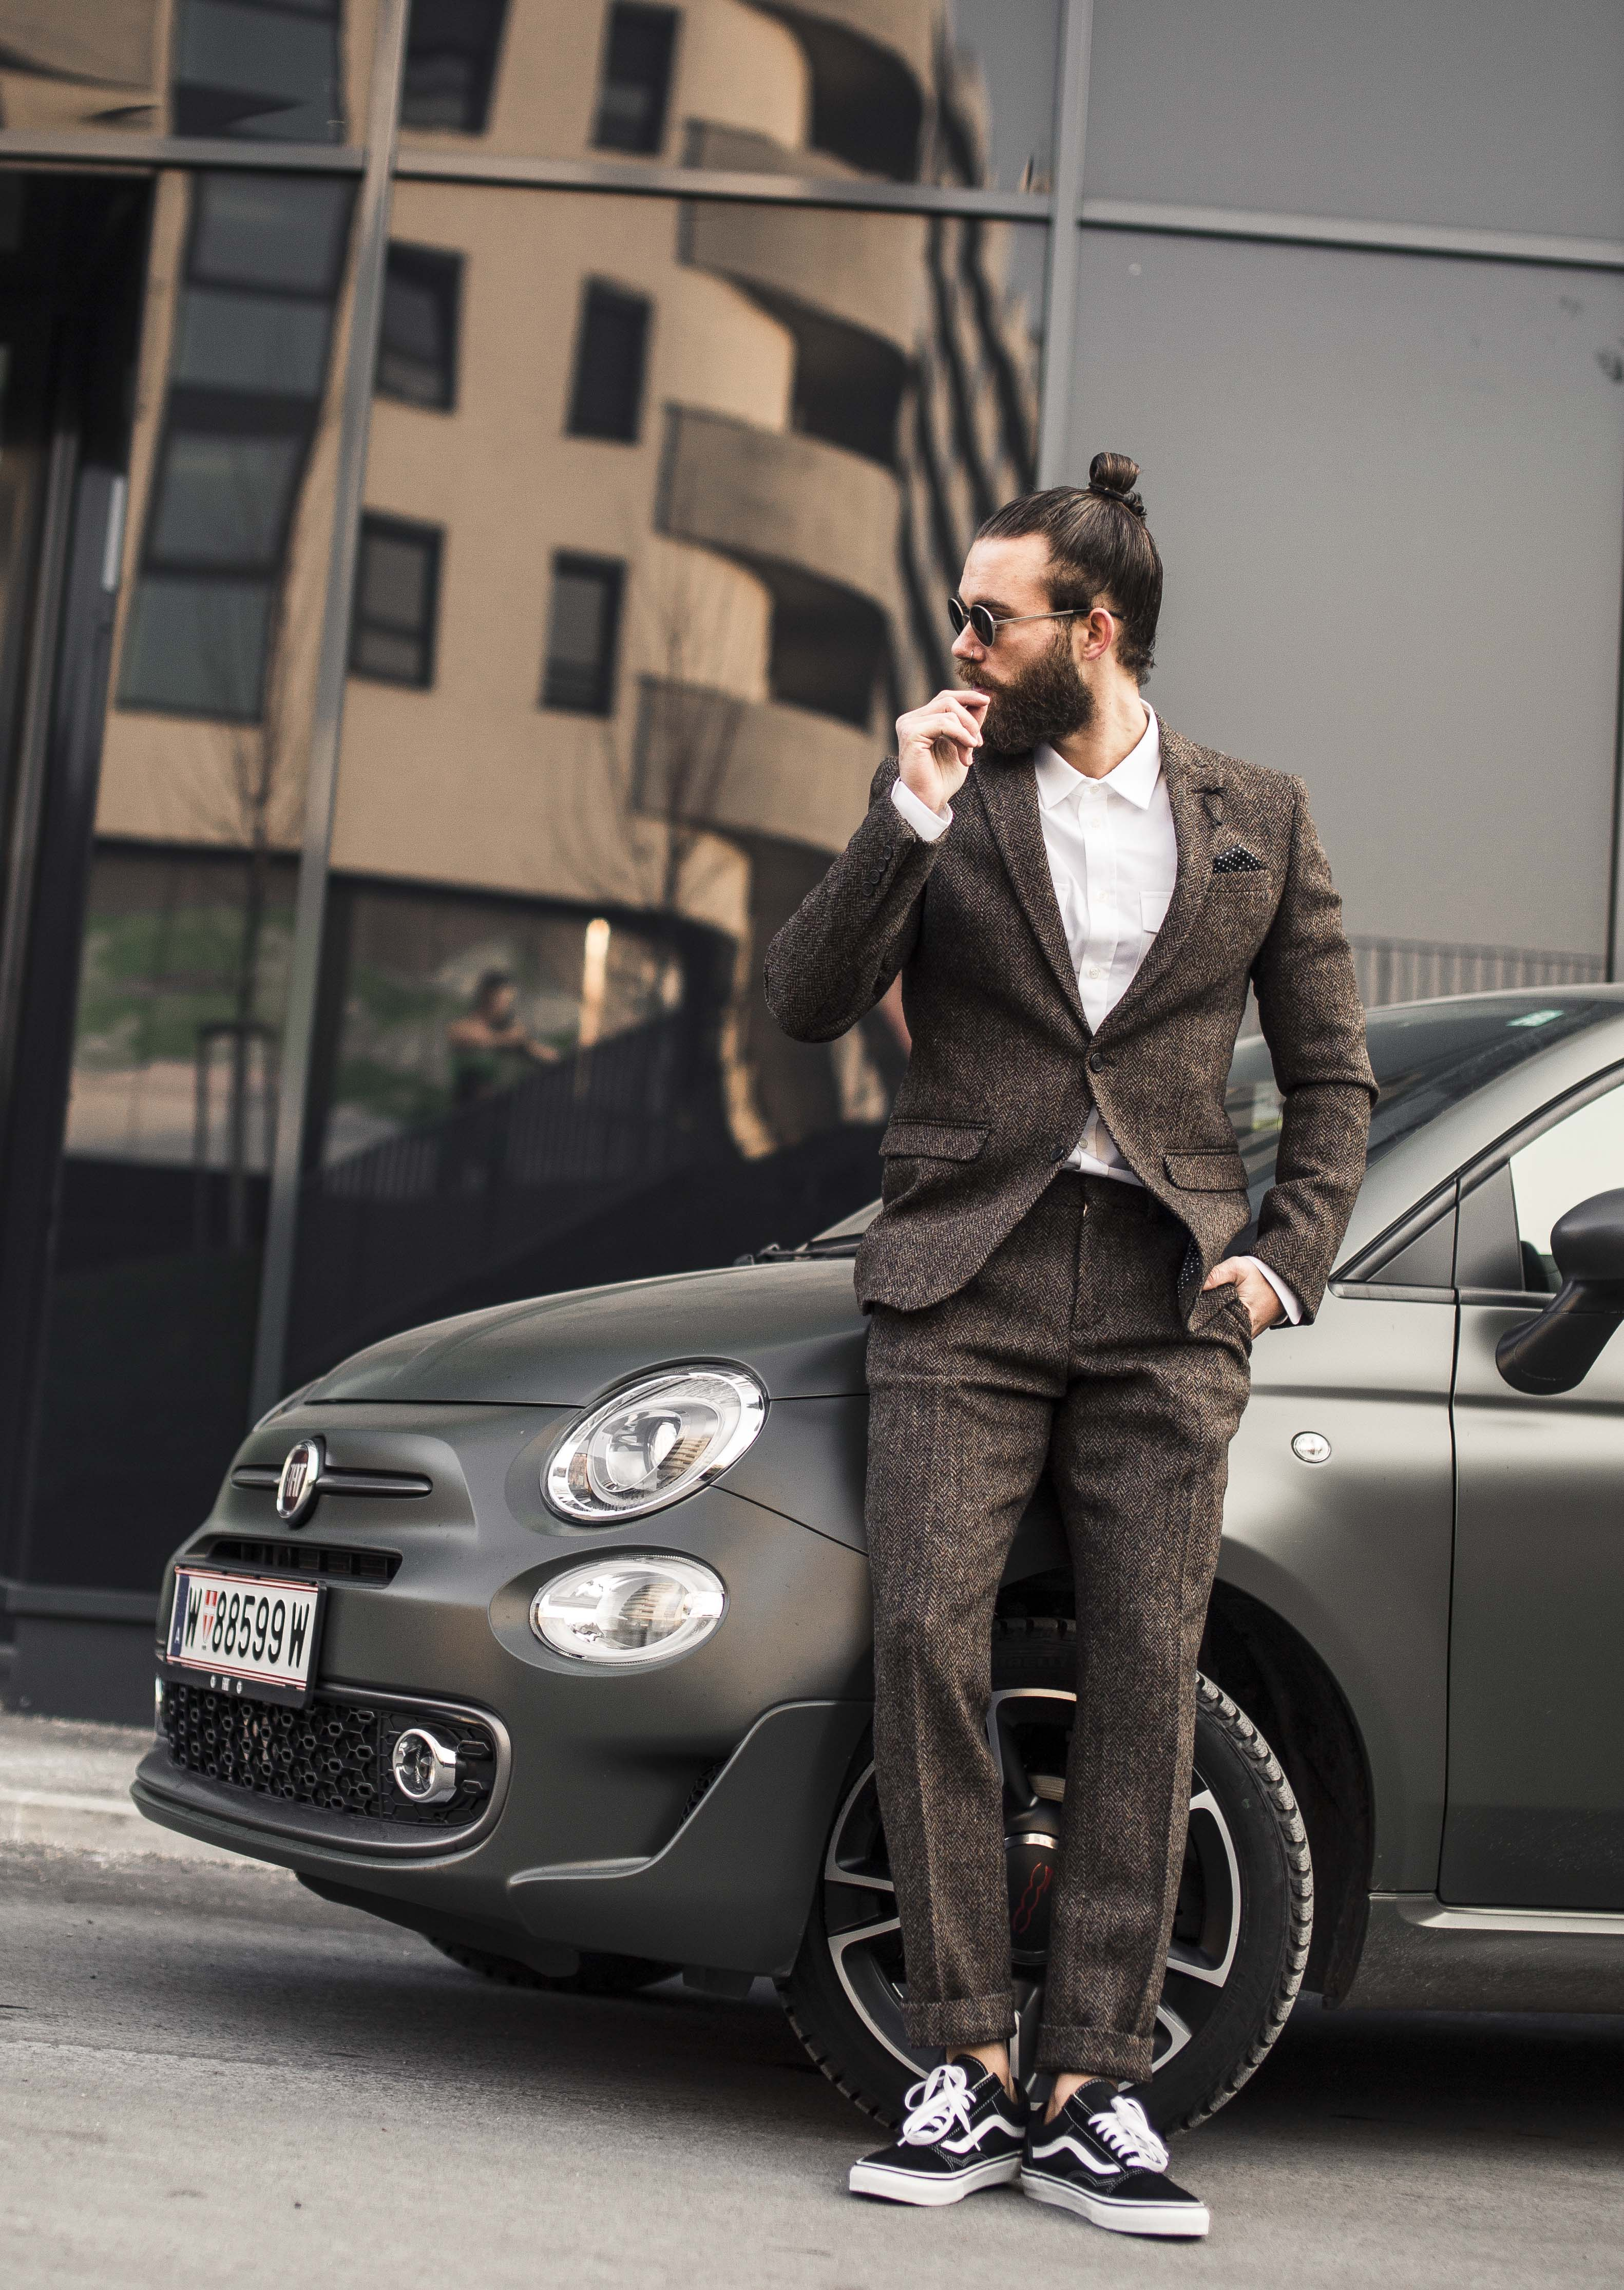 Hank ge , Fiat , Fiat 500s , Love at first drive , male blogger , Austrian blogger , fashion blog , Hank ge